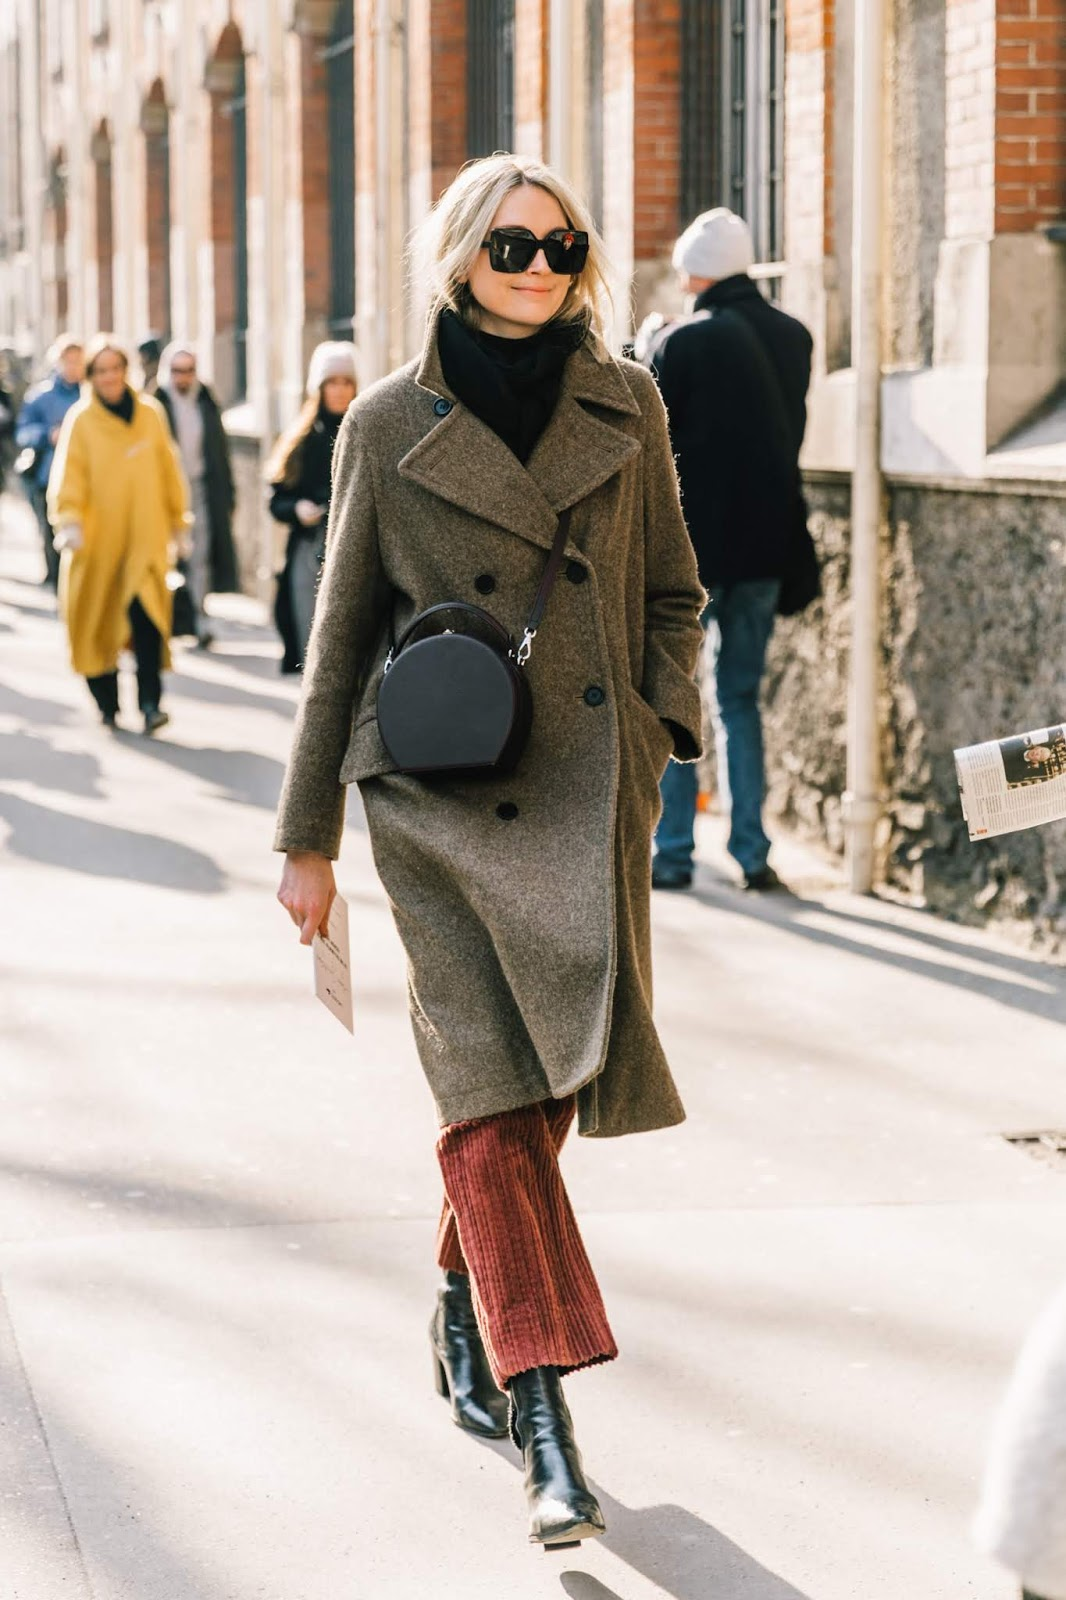 Winter Outfit Formula: Classic Coat, Turtleneck, Crossbody Bag, Corduroy Cropped Pants, and Ankle Boots